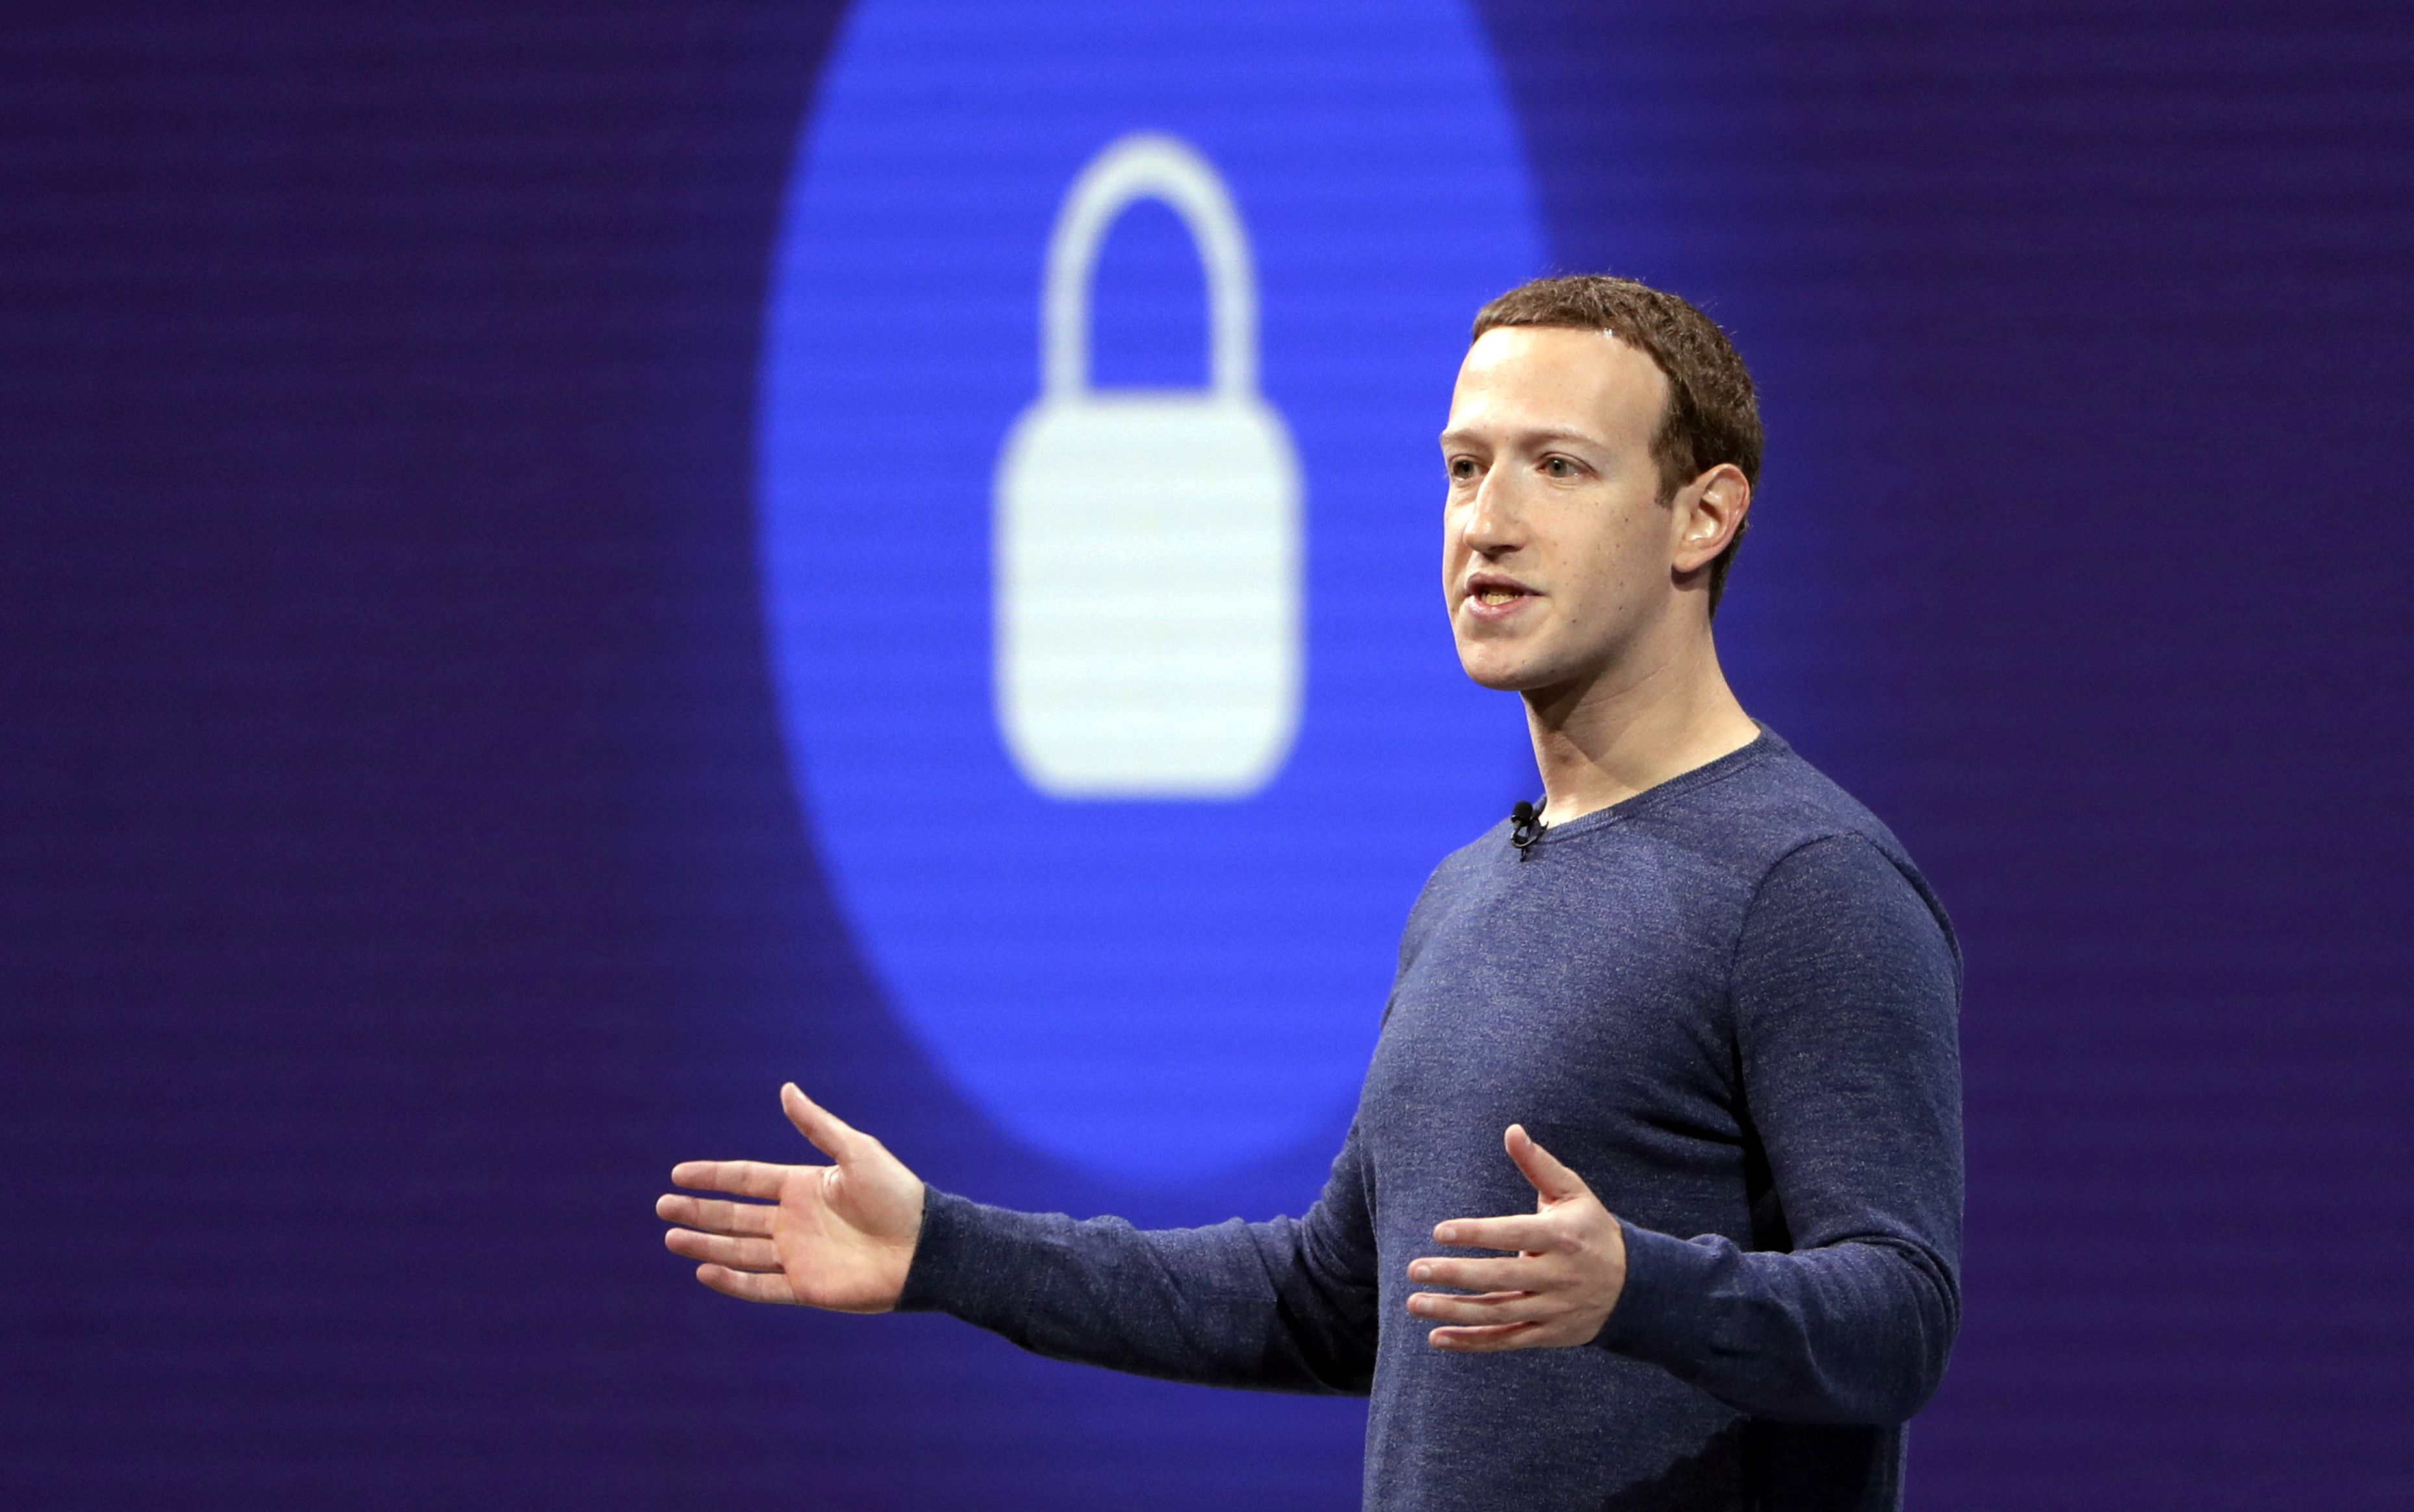 Facebook ripped by Canadian regulator for 'major breach of trust' in Cambridge Analytica scandal